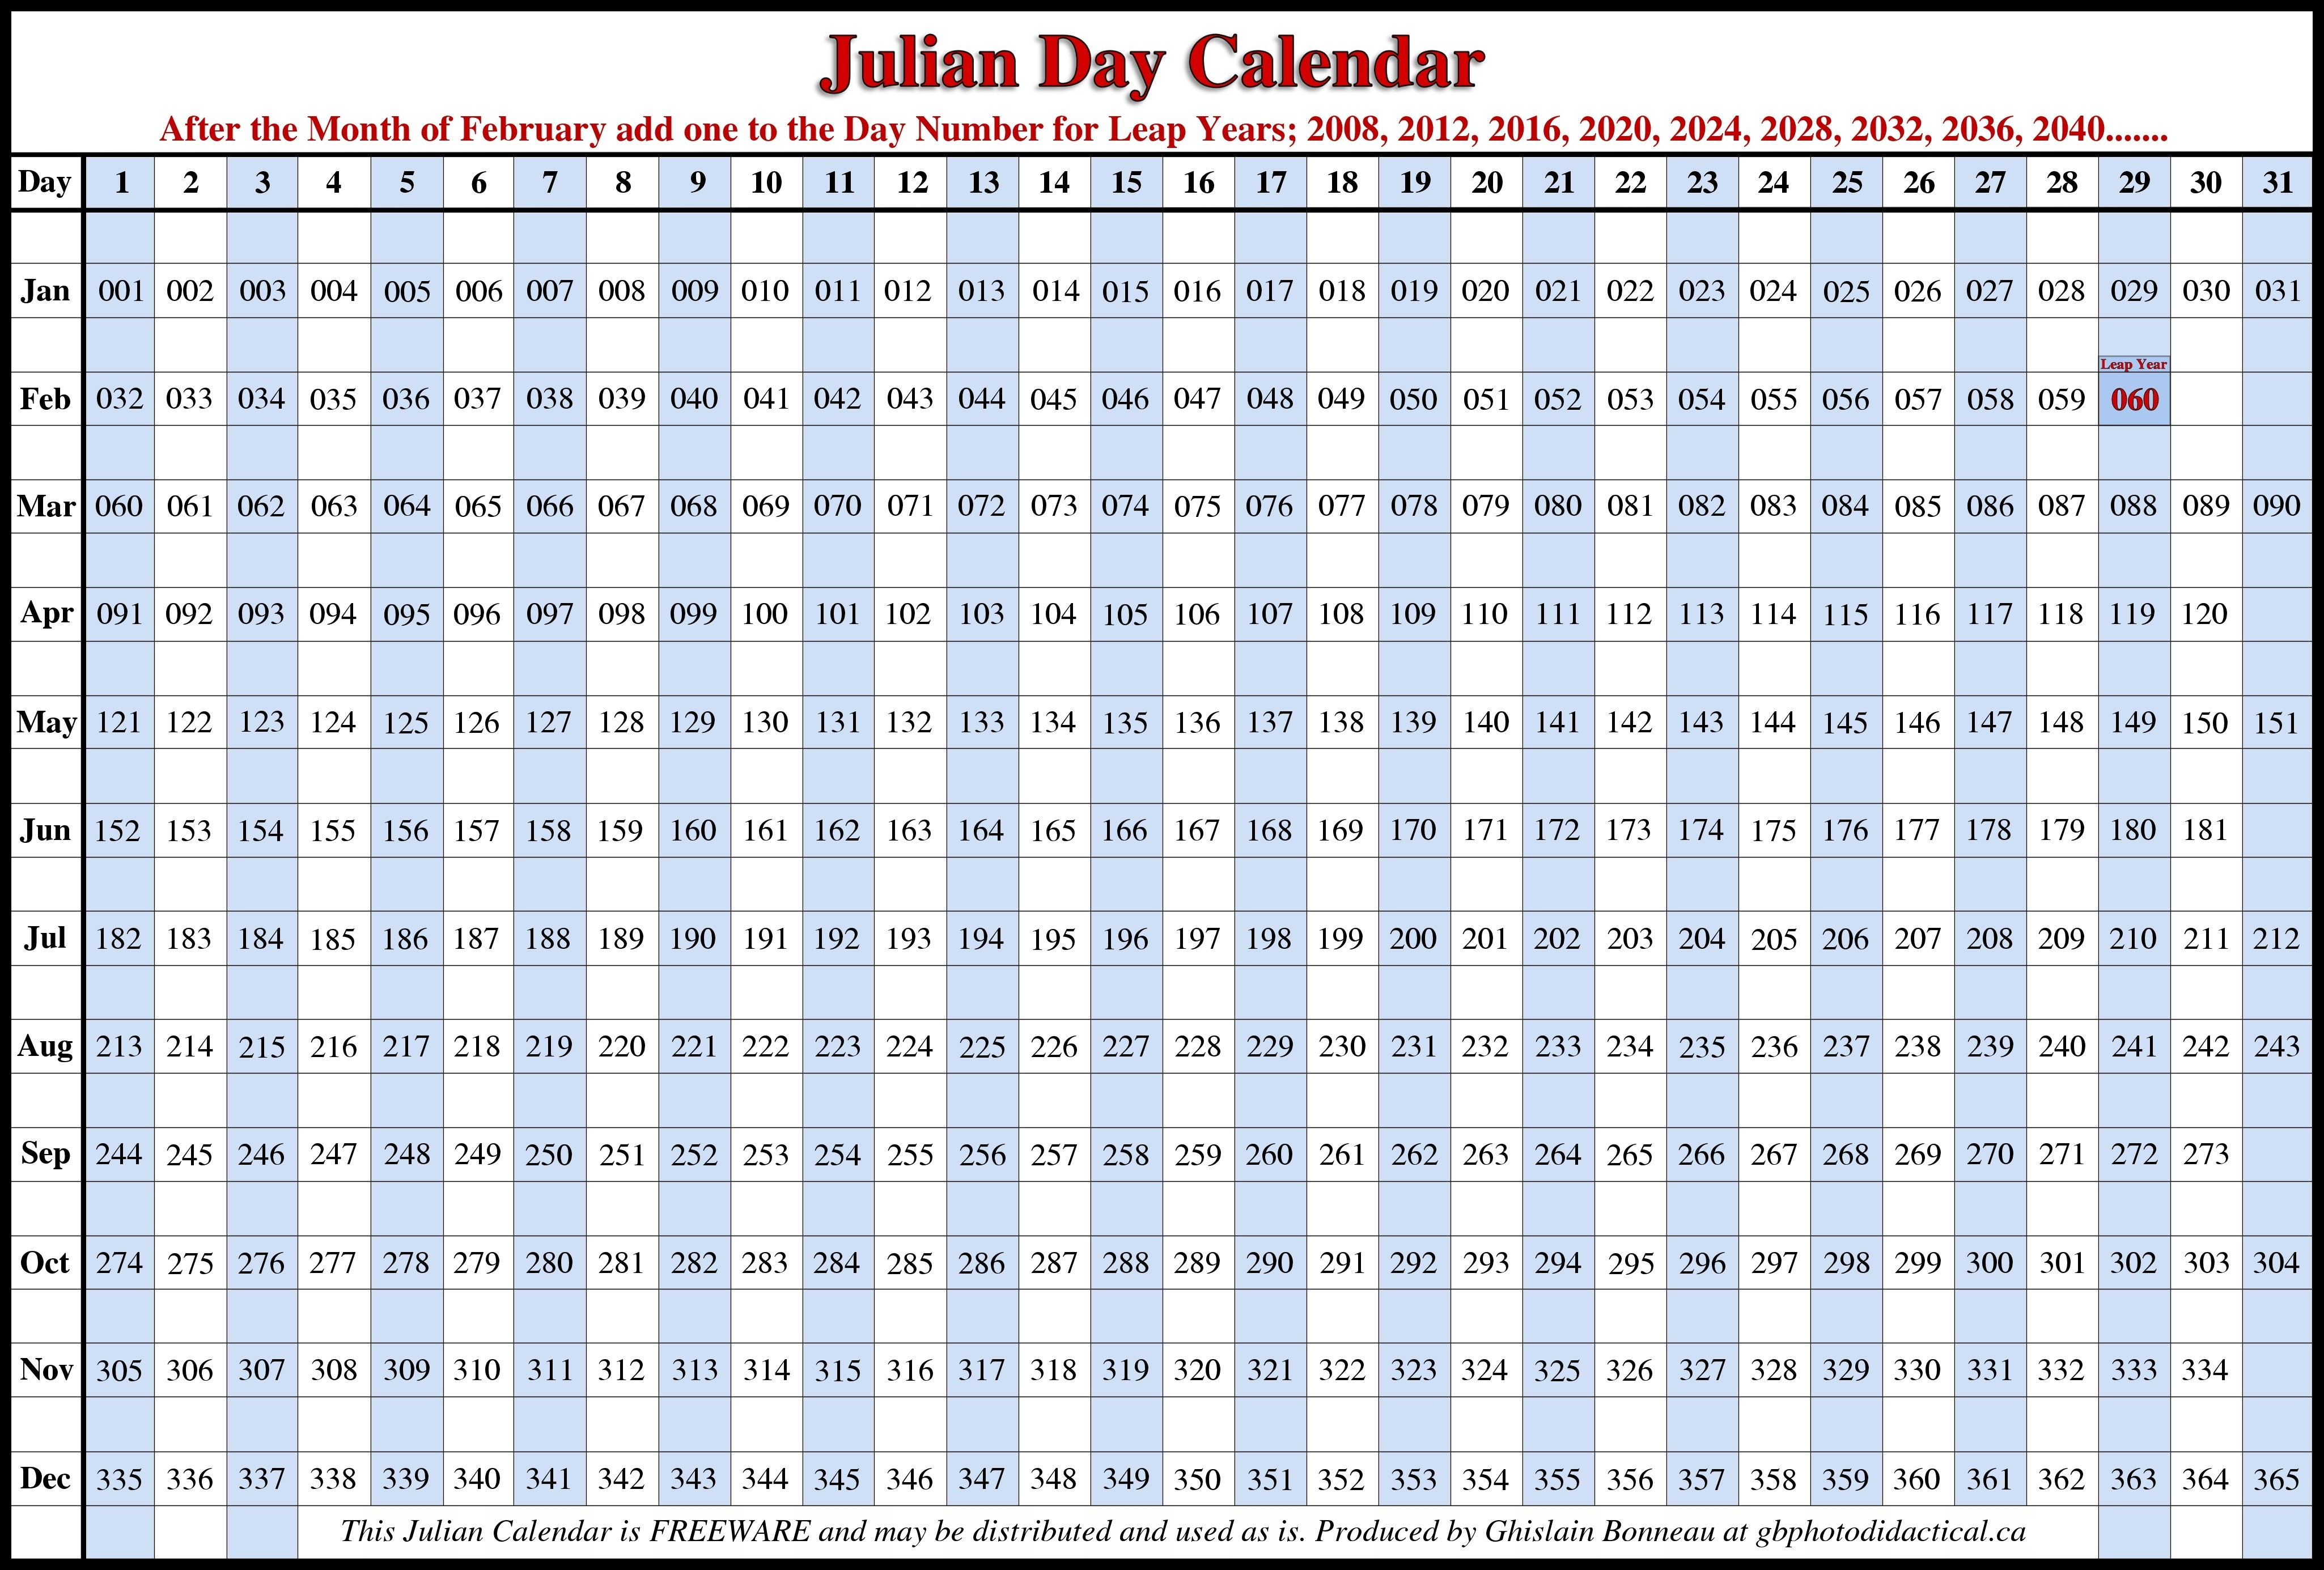 Julian Calendar 2020 Pdf Quadax | Example Calendar Printable intended for Quadax 2020 Julian Calendar